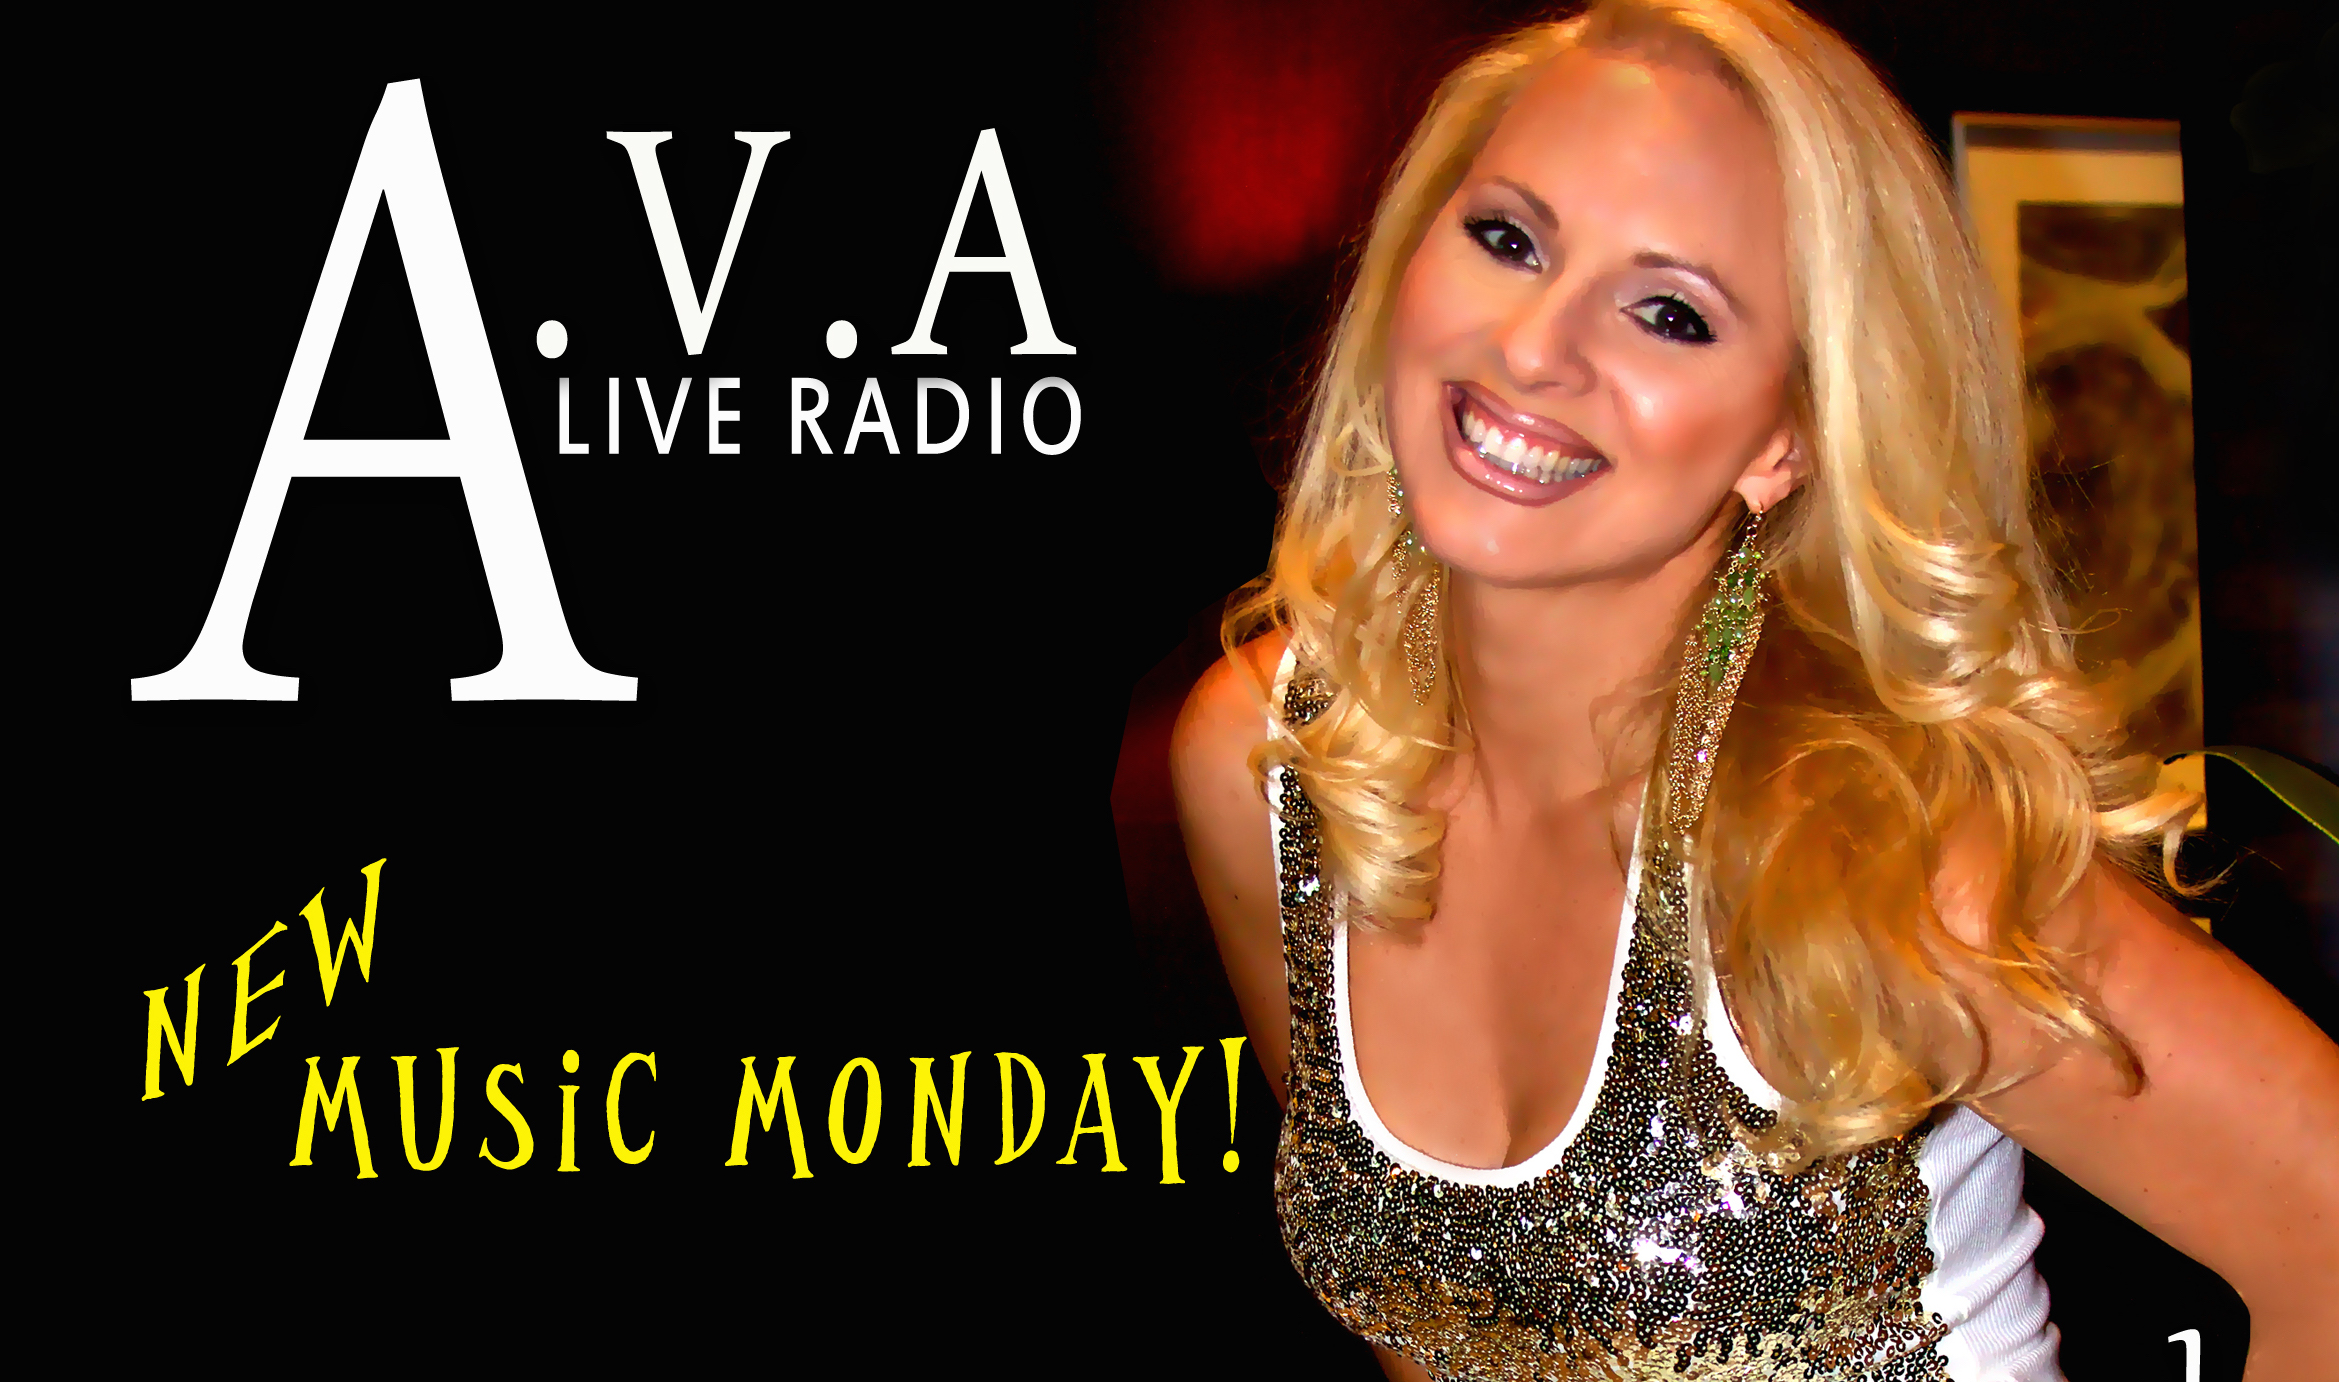 11.28 New Music Monday with Jacqueline Jax